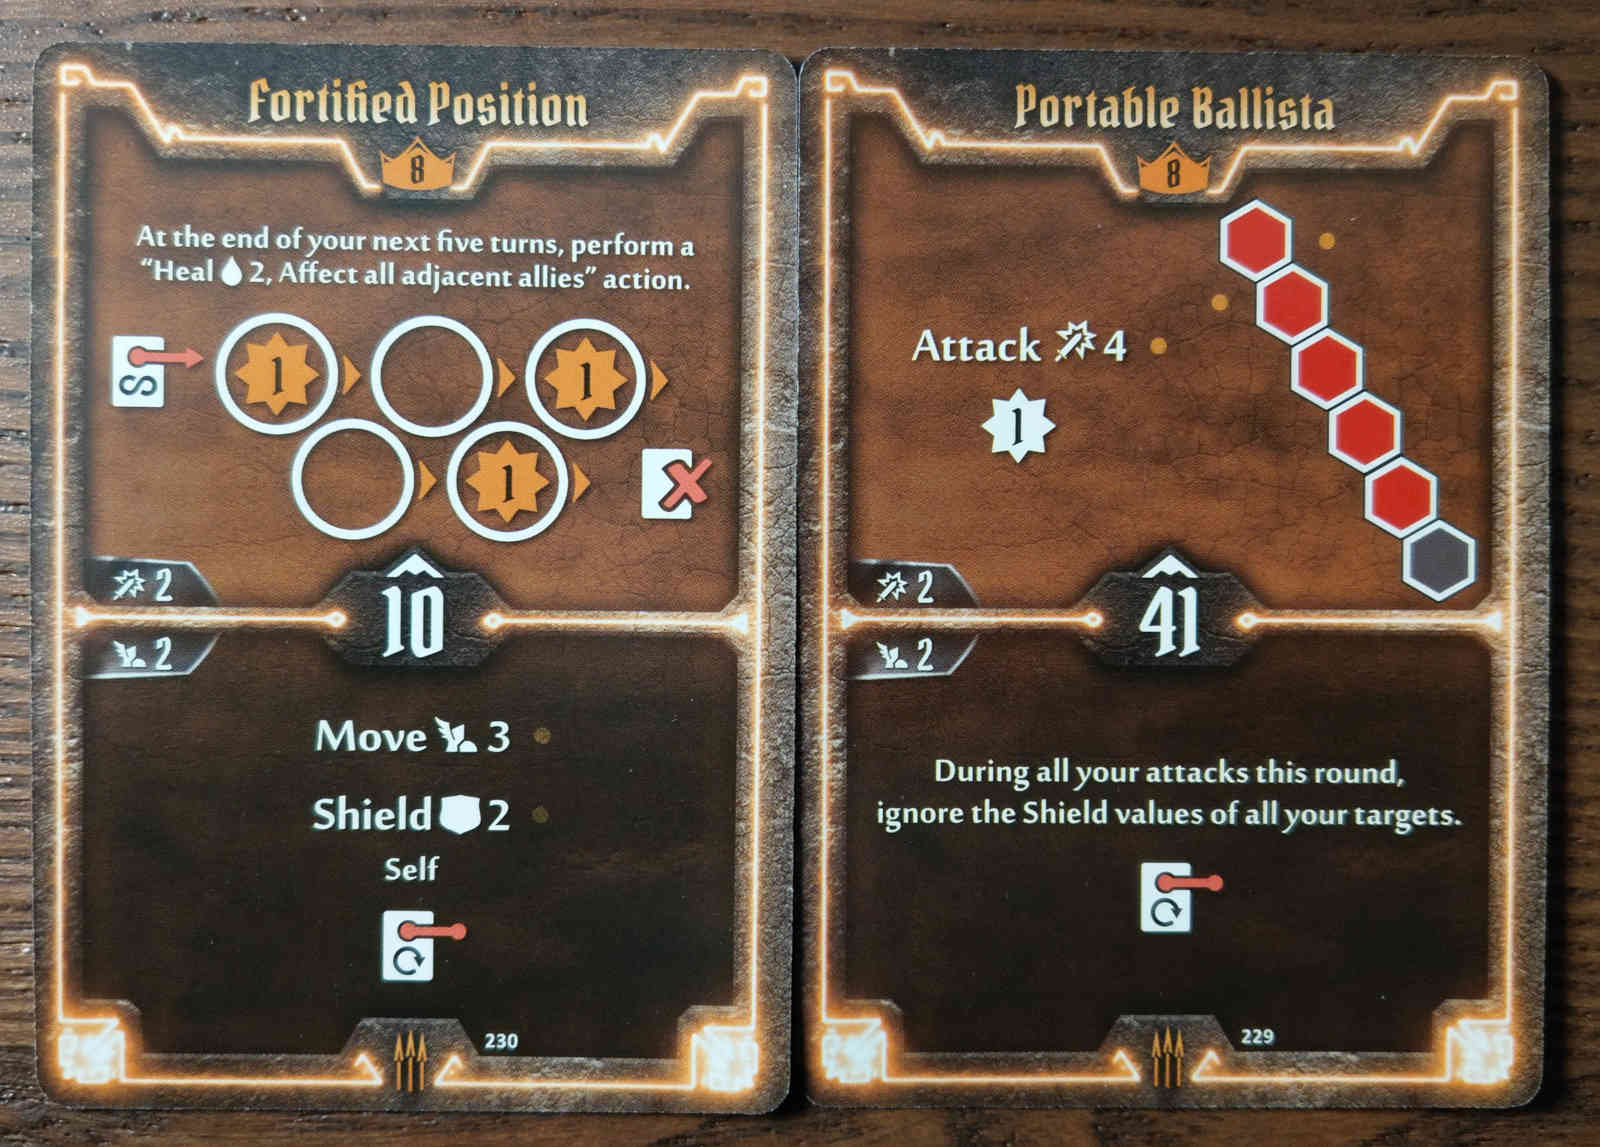 Level 8 Quartermaster cards - Fortified Position and Portable Ballista